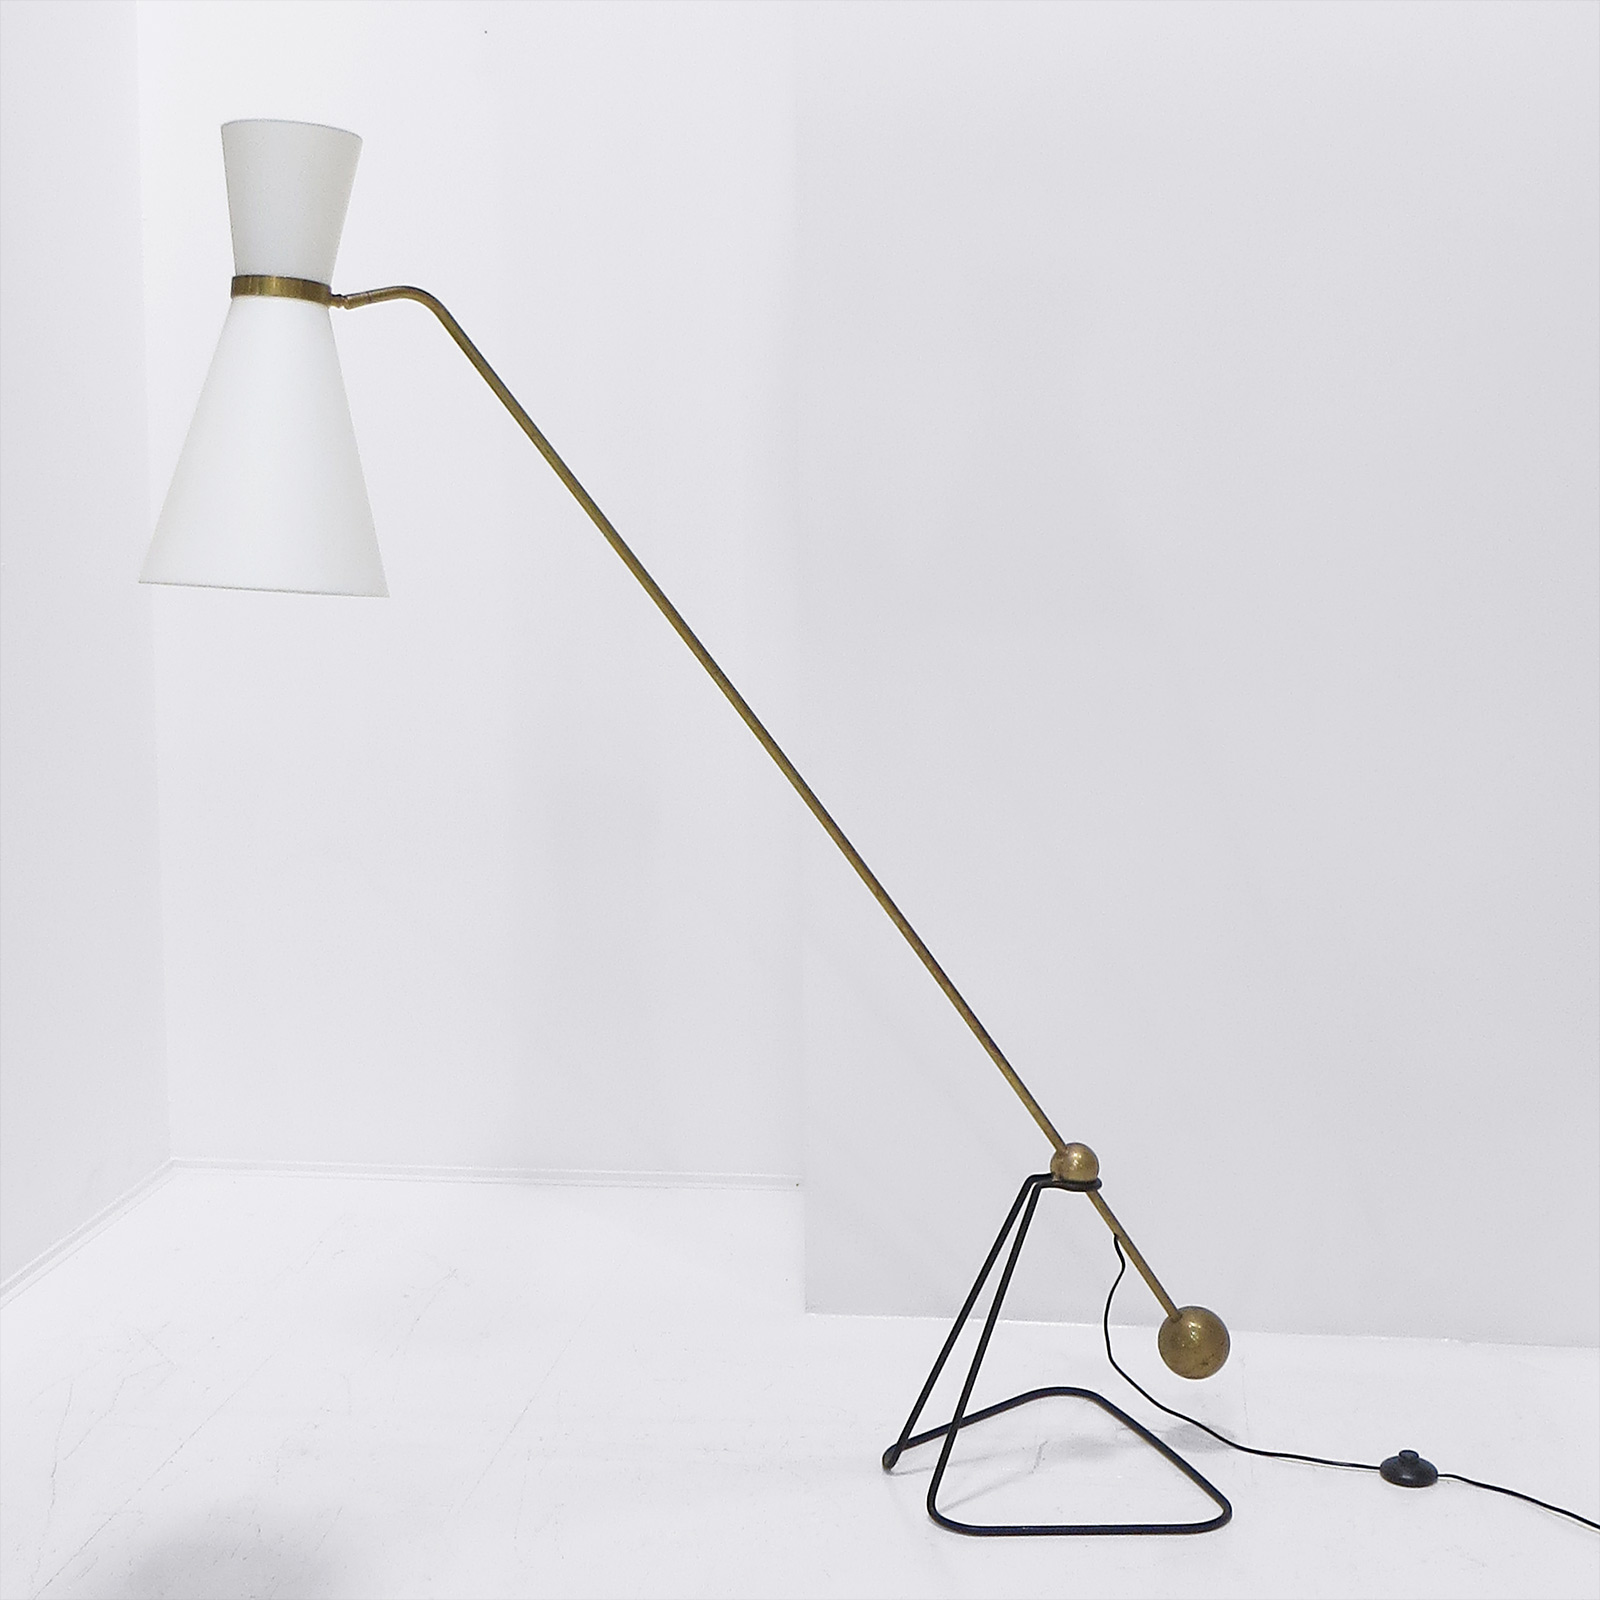 French Counter Weight Lamp A1